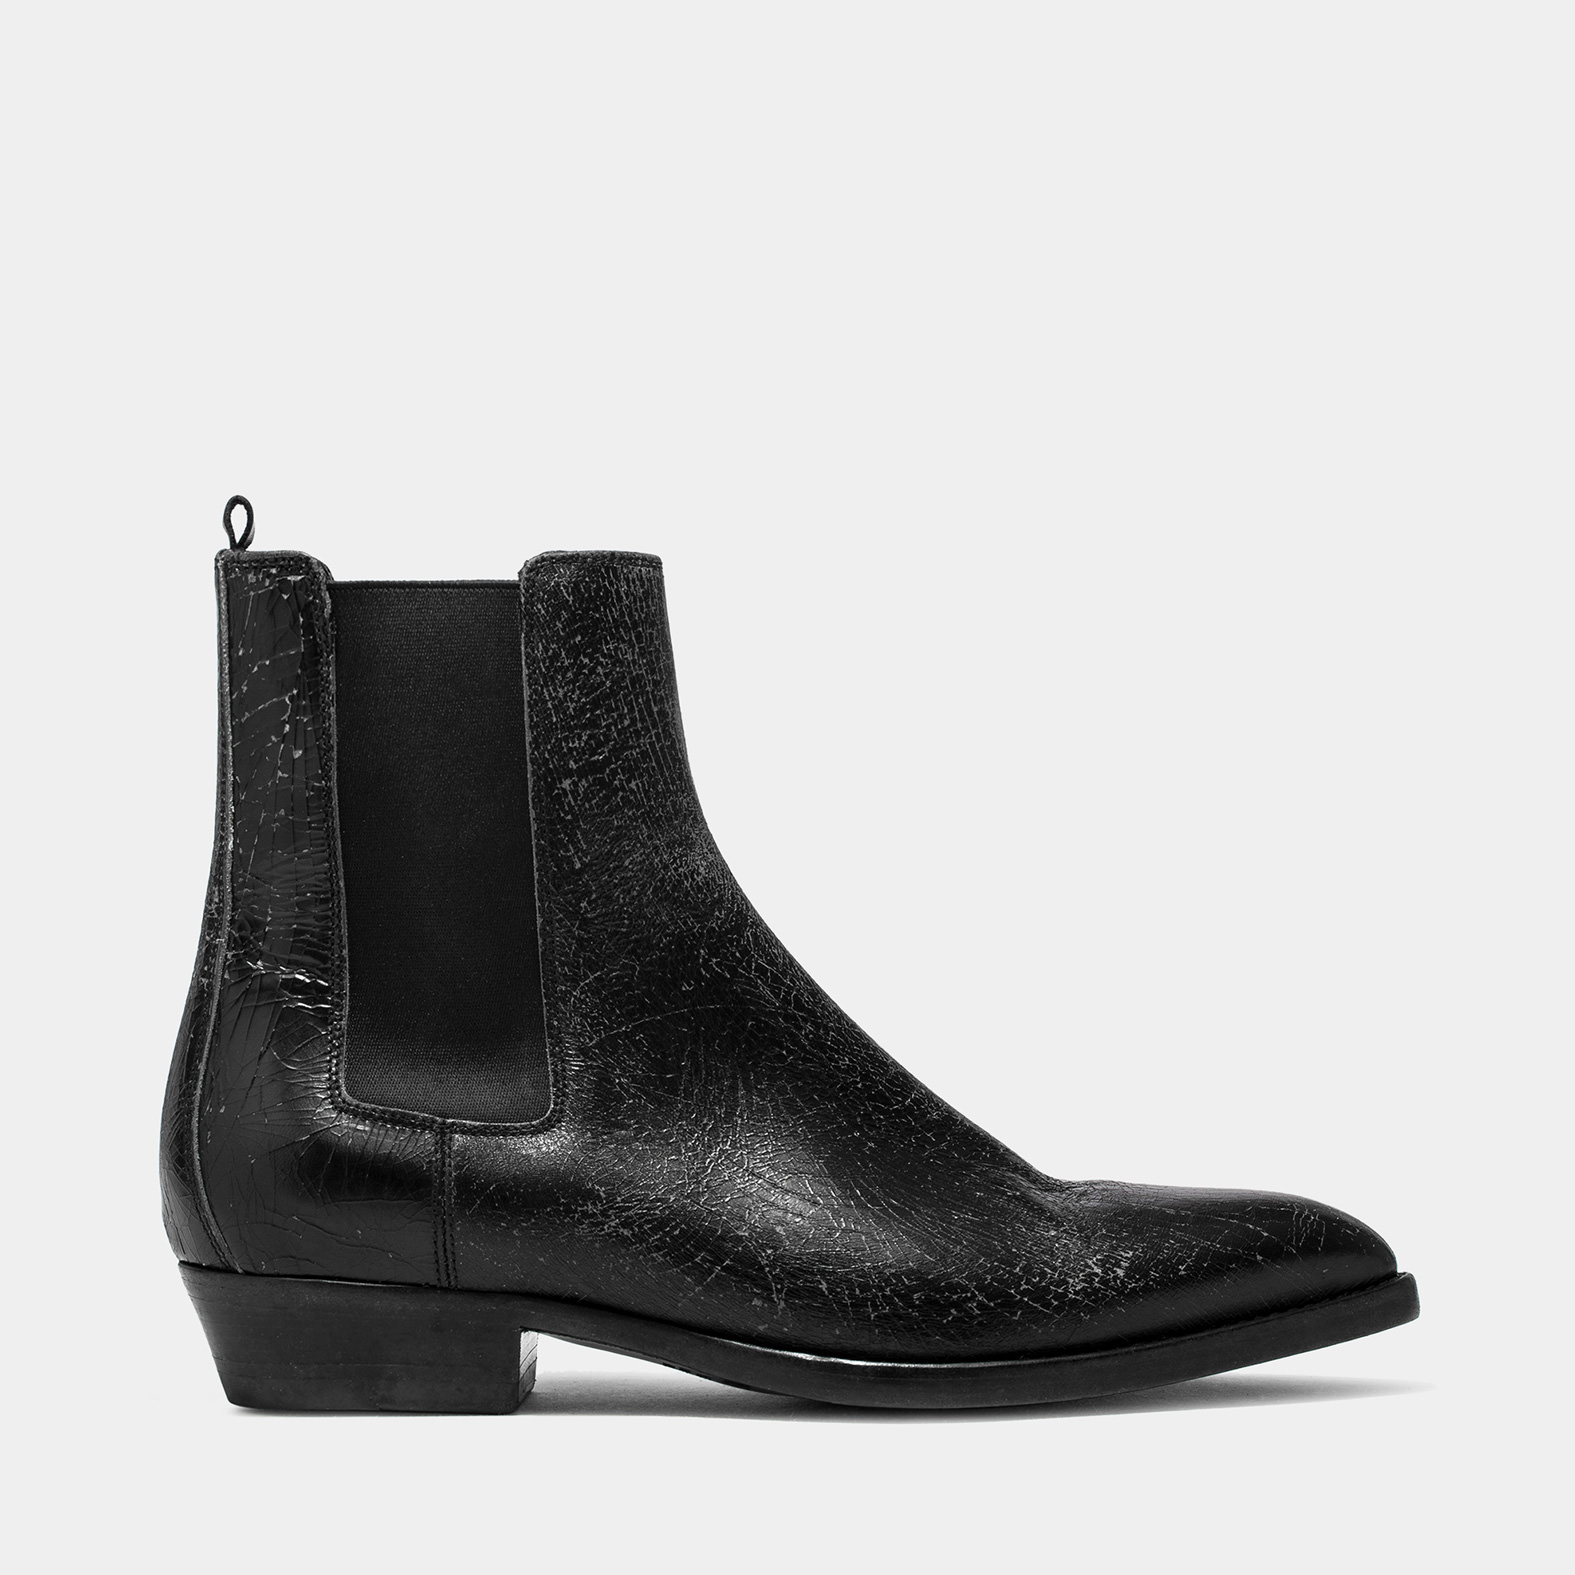 BUTTERO: BLACK CRAKELE LEATHER FARGO ANKLE BOOTS